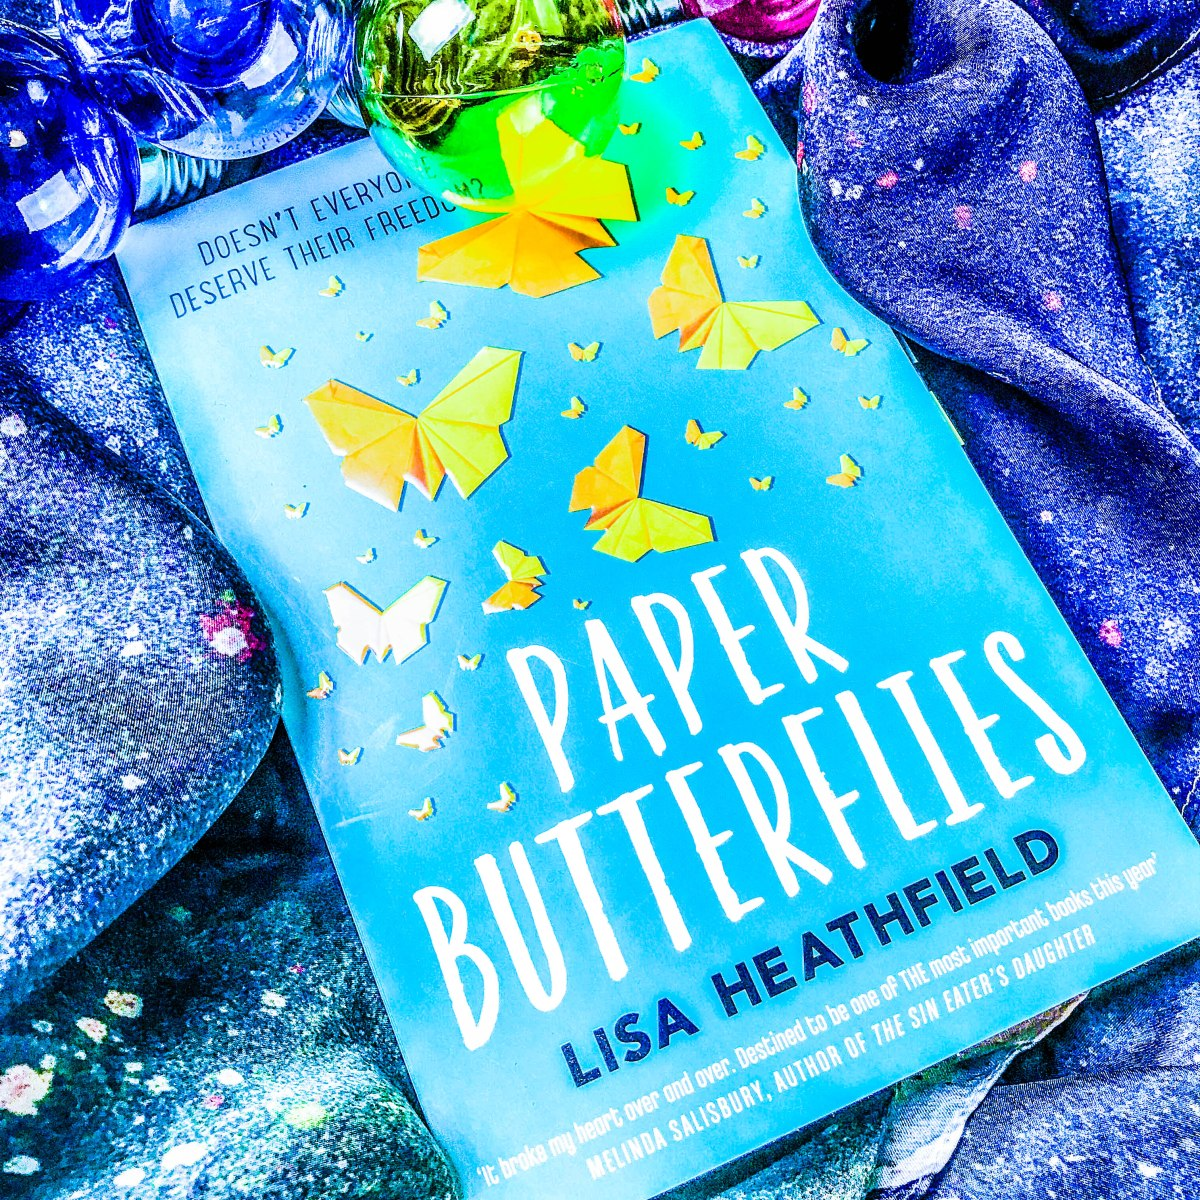 Review: Paper Butterflies